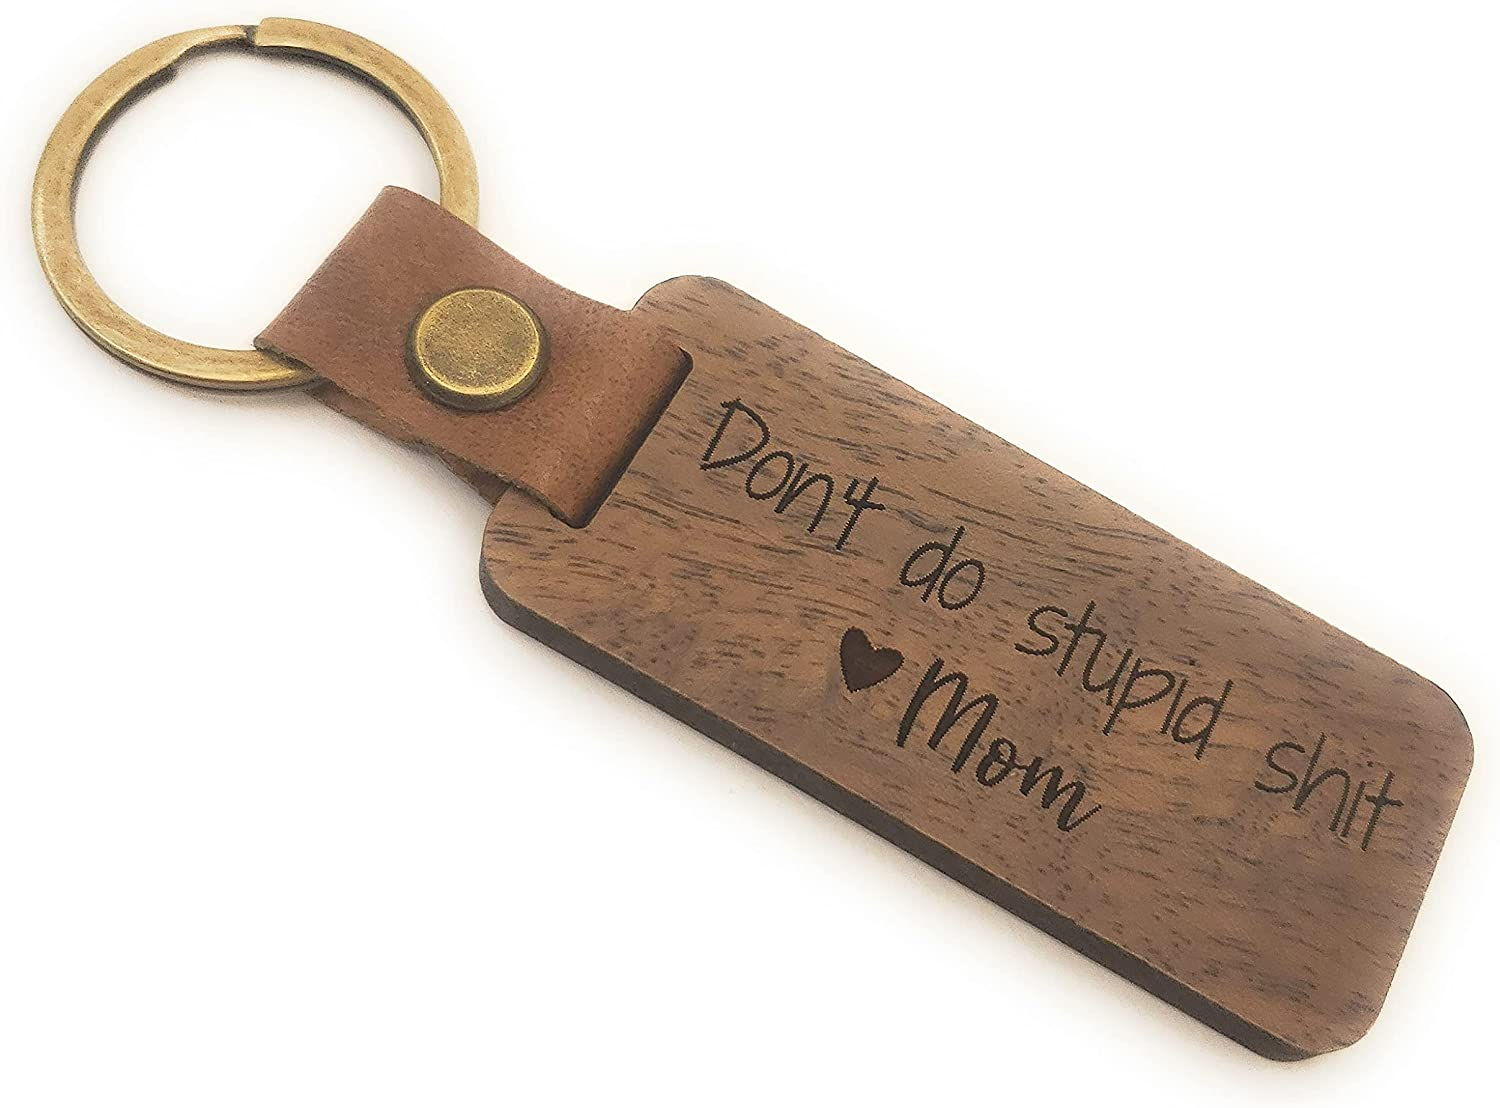 Don't Do Stupid Shit Leather Mom Wood Omaha Mall Rustic 2021 spring and summer new Love Keychain